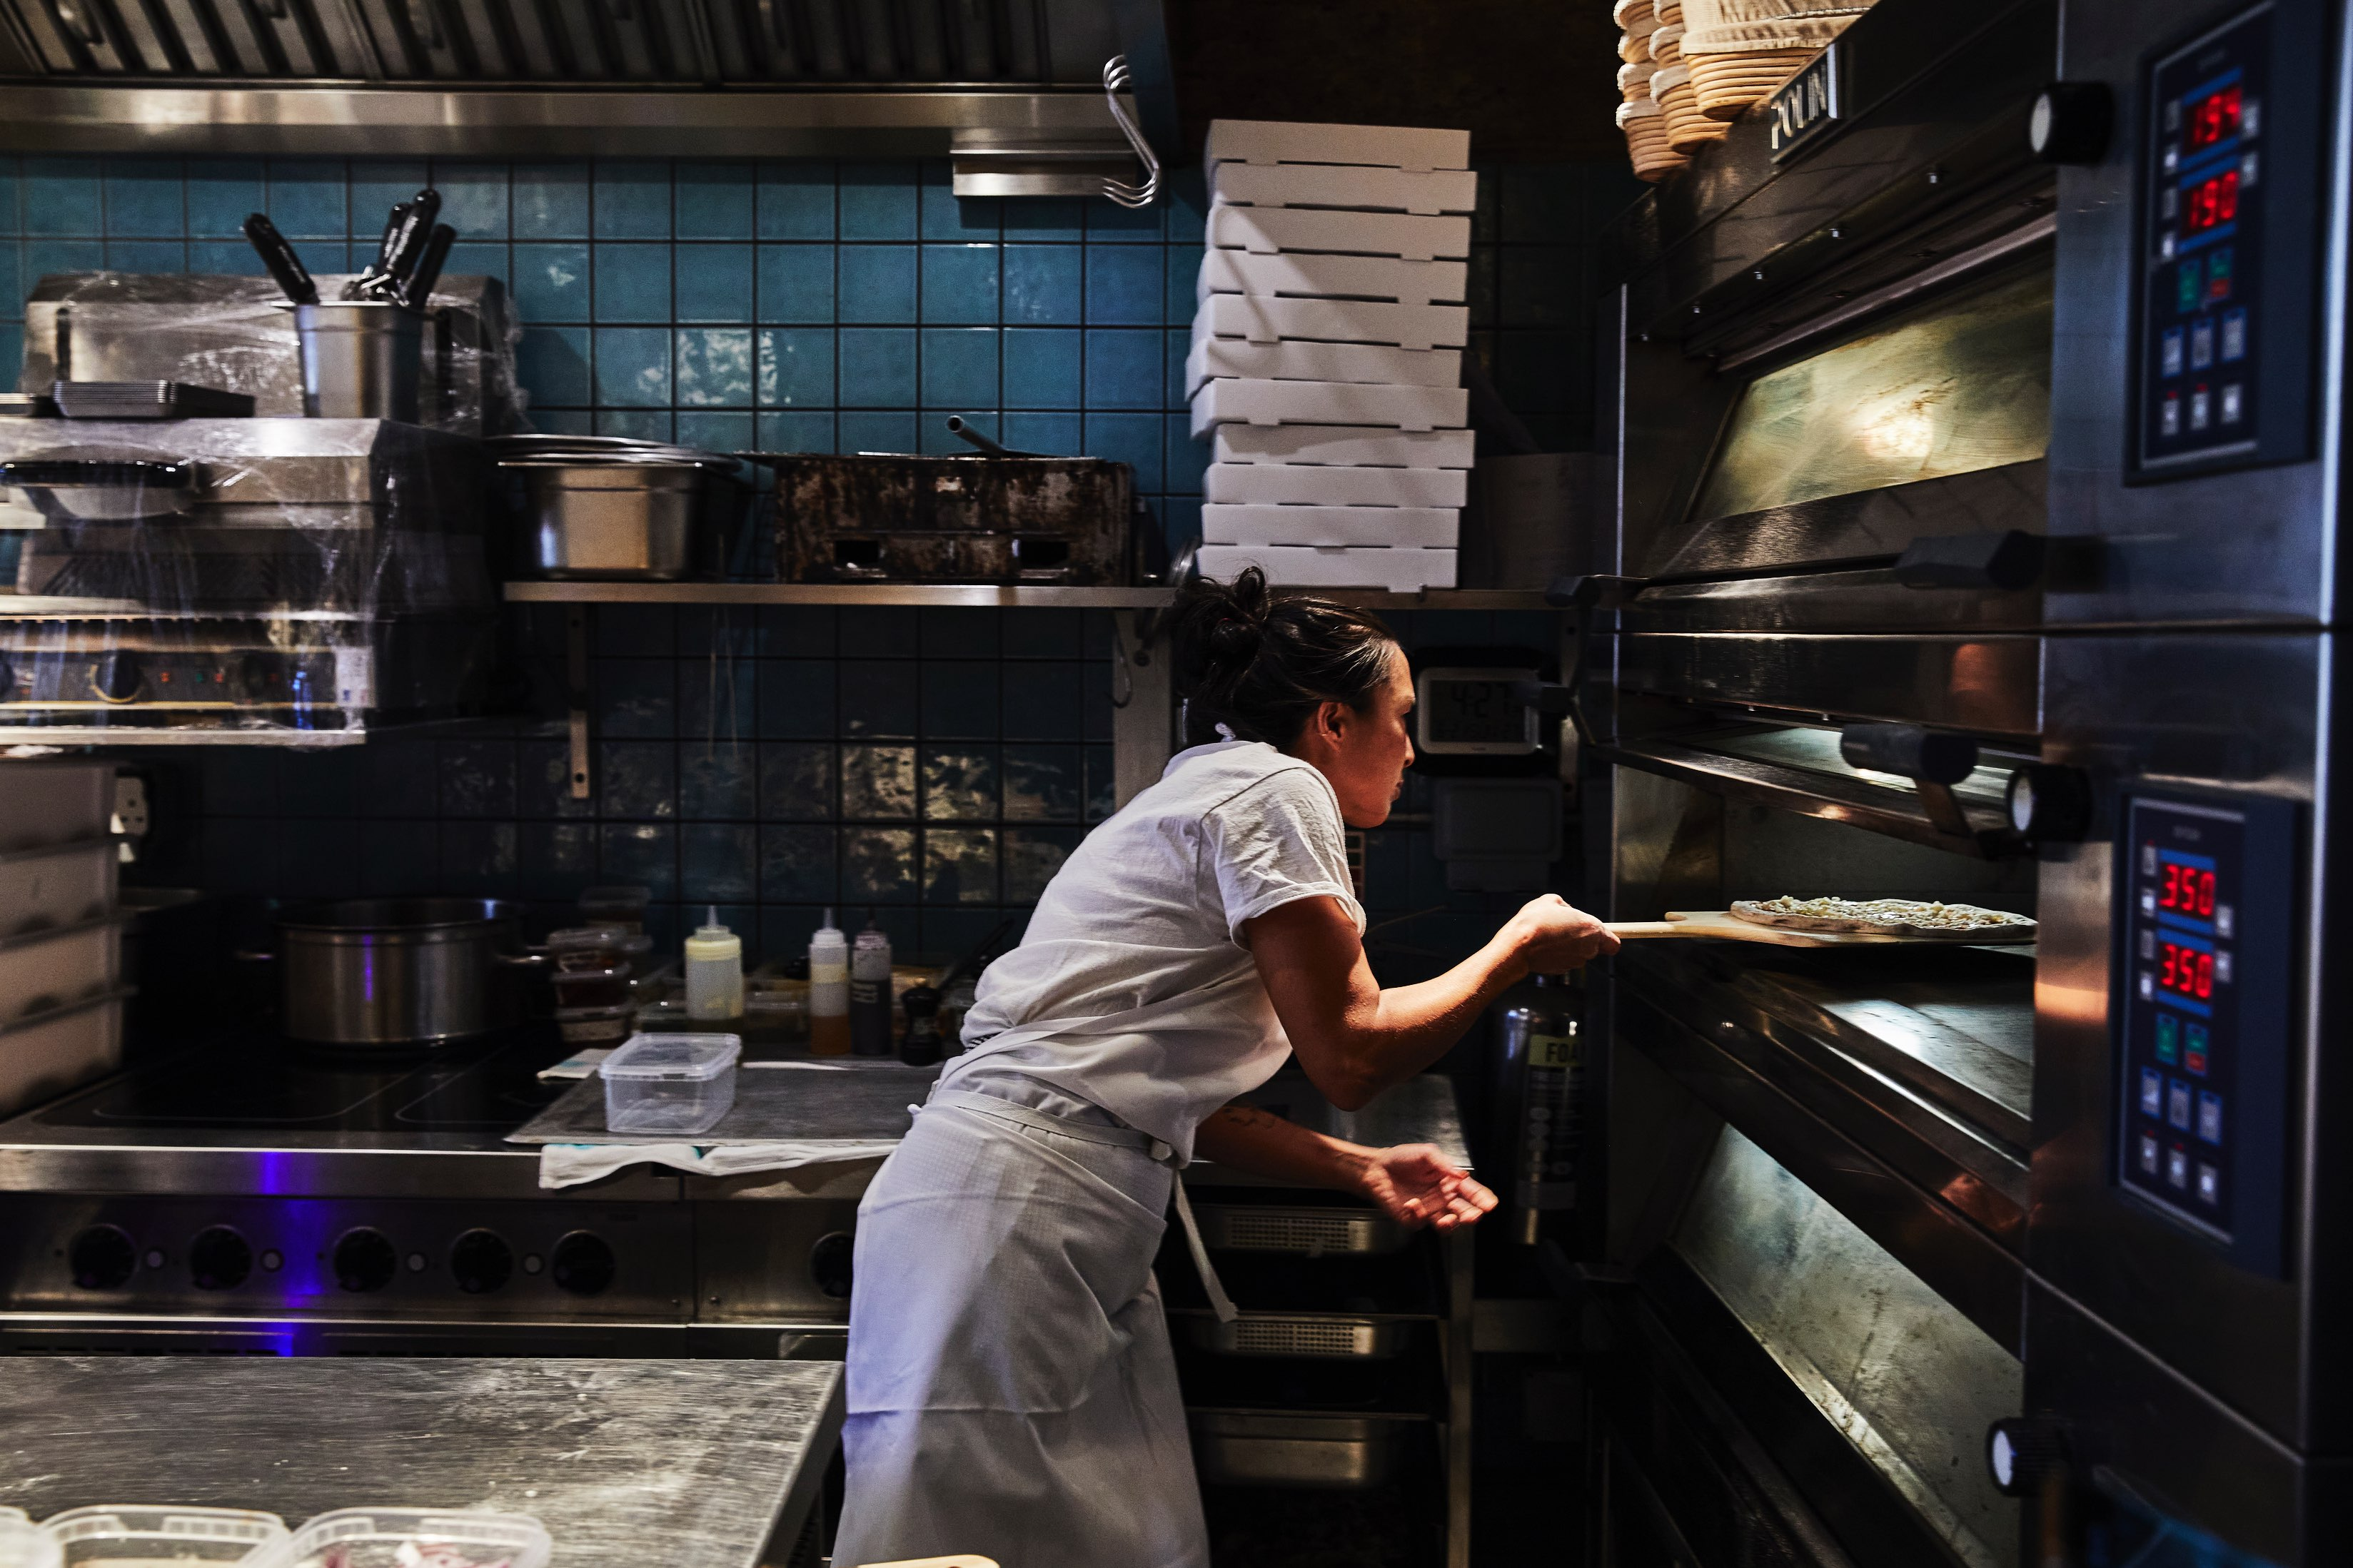 Pam Yung of ASAP pizza, at Flor, the sister restaurant of Michelin-starred Shoreditch restaurant Lyle's and business partner of chef James Lowe